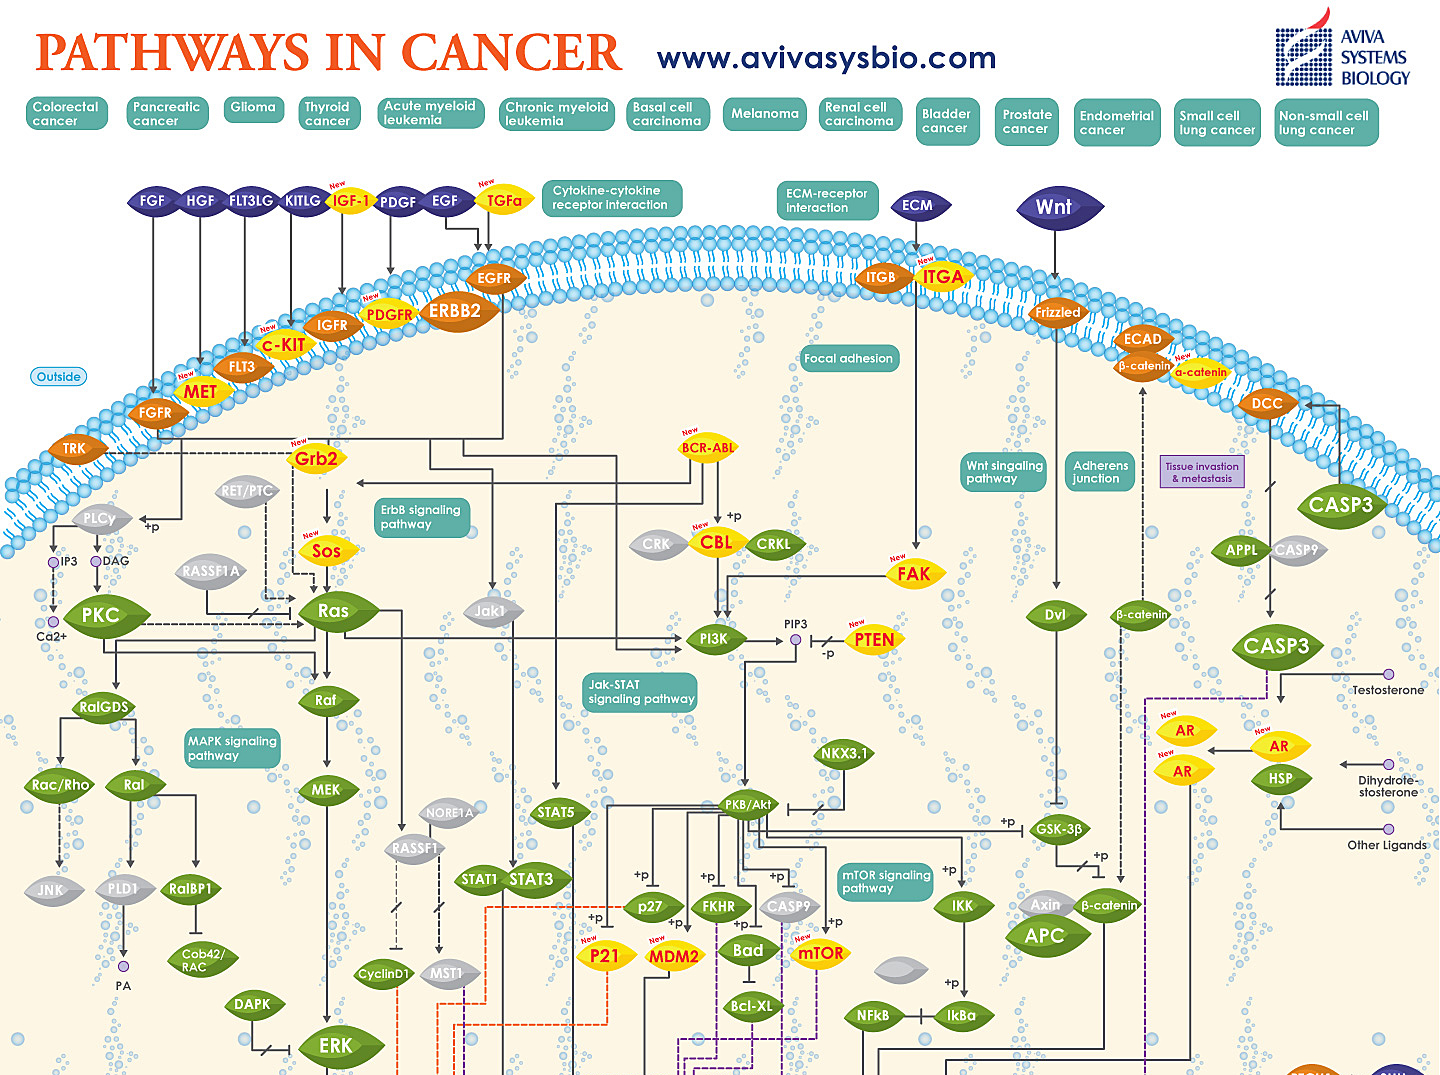 Pathways in Cancer image by Aviva System Biology top